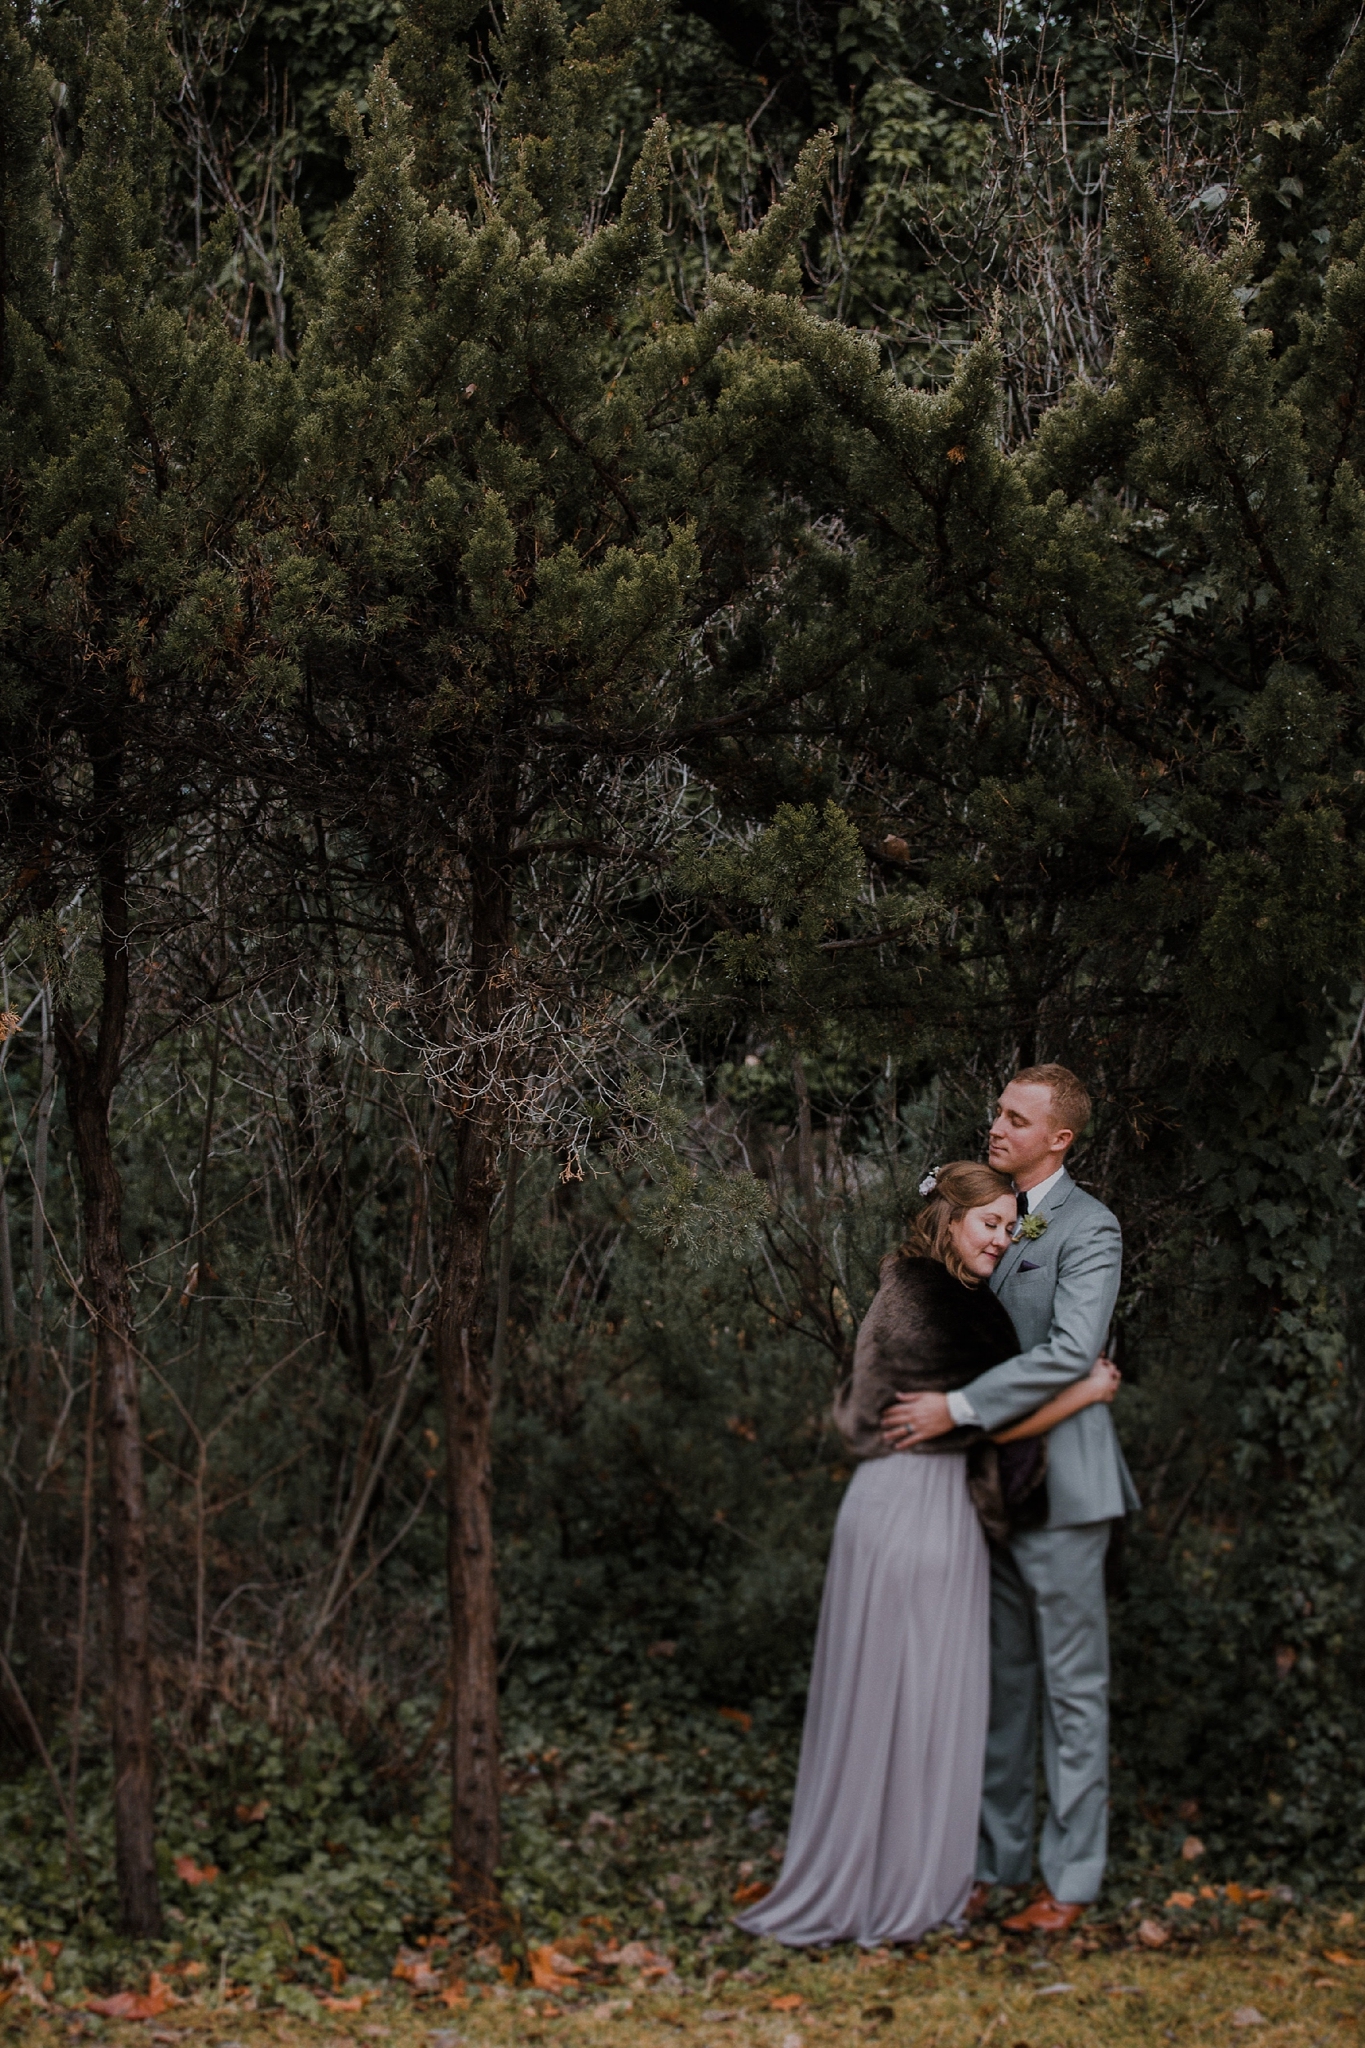 Alicia+lucia+photography+-+albuquerque+wedding+photographer+-+santa+fe+wedding+photography+-+new+mexico+wedding+photographer+-+albuquerque+wedding+-+santa+fe+wedding+-+wedding+gowns+-+non+traditional+wedding+gowns_0051.jpg